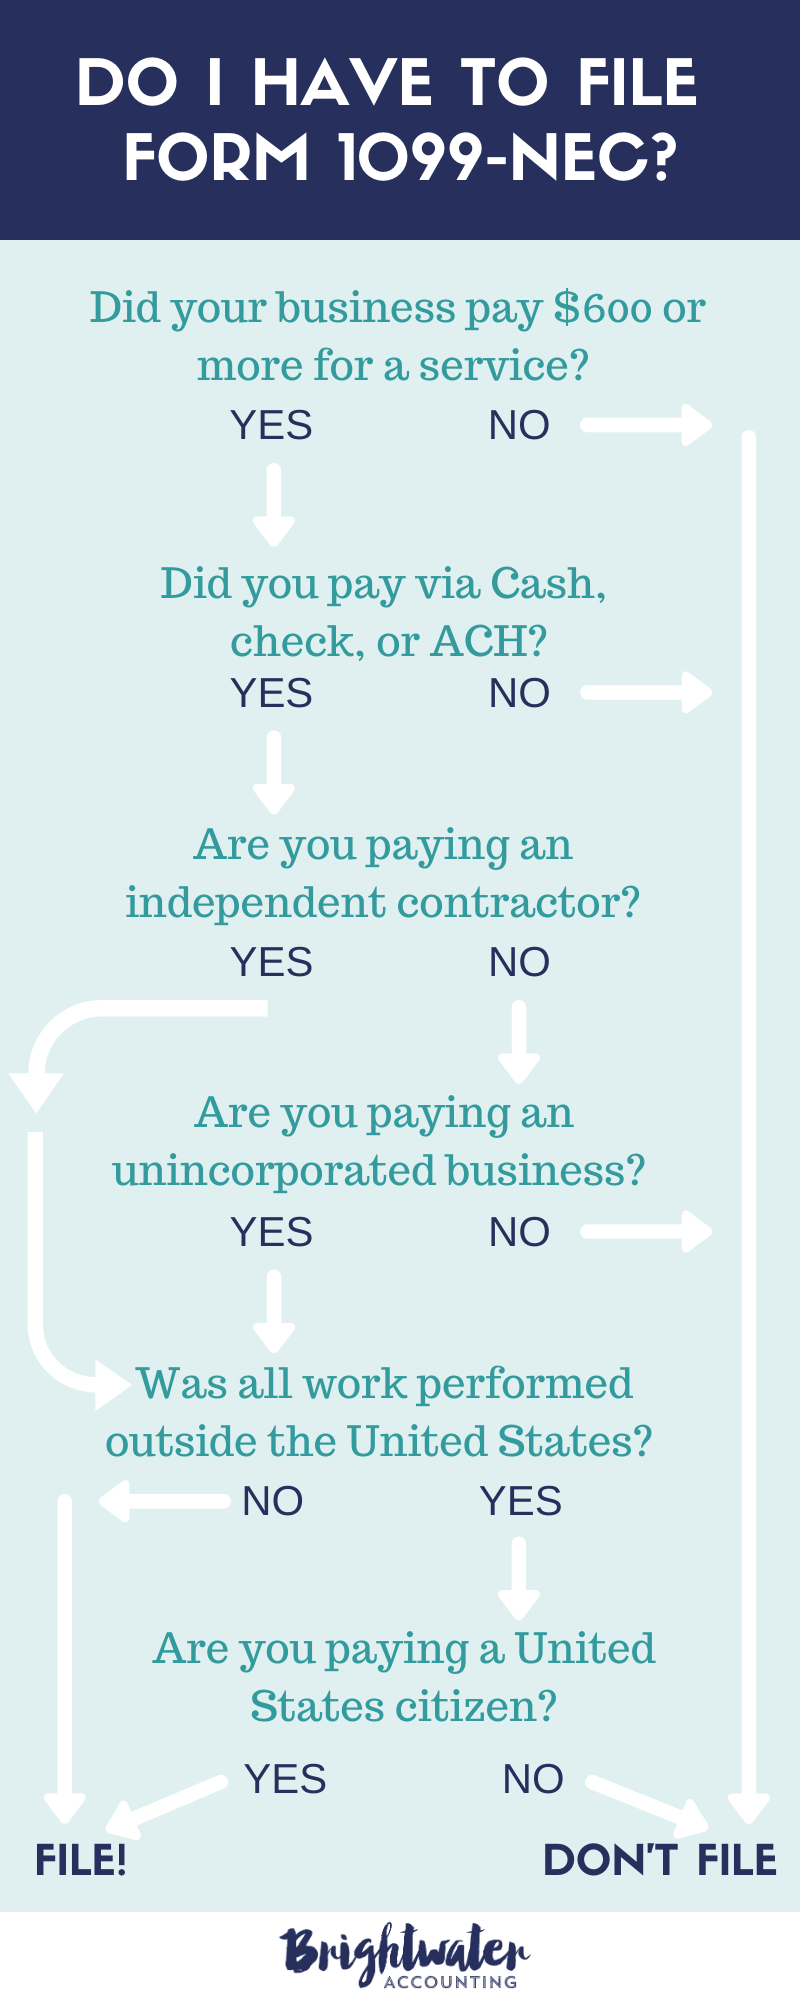 Do I have to file Form 1099-NEC?